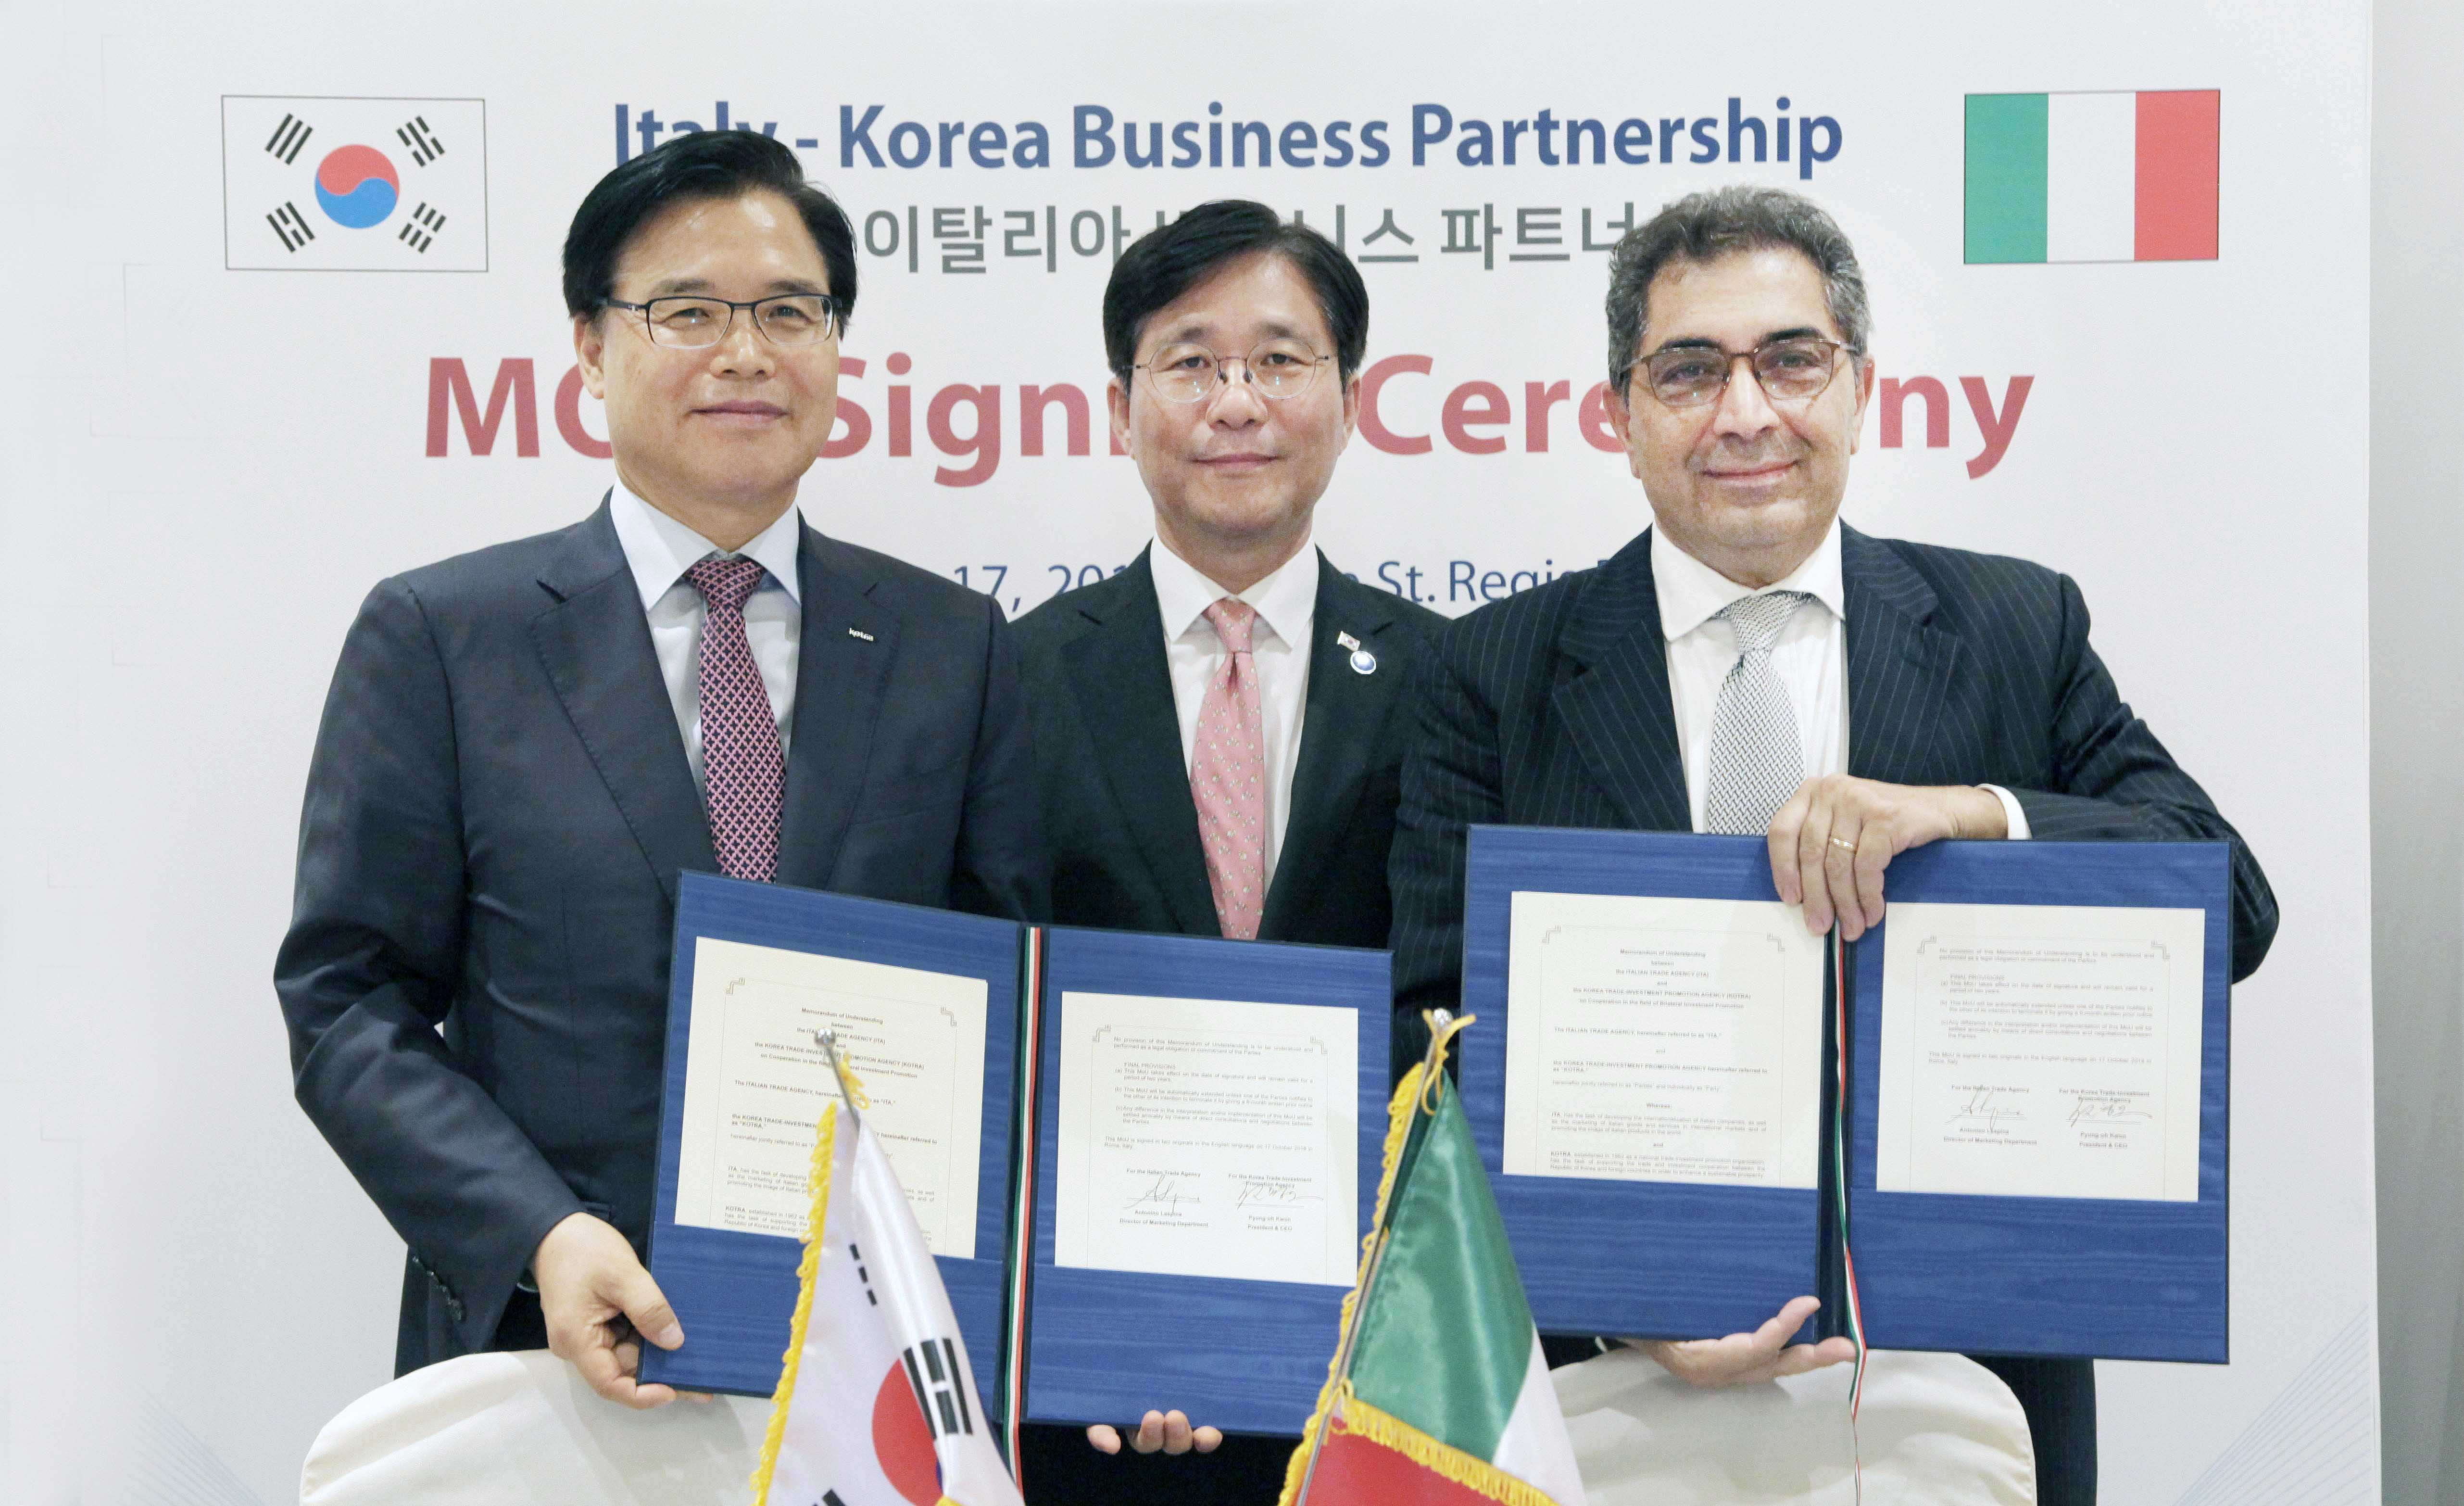 Minister Sung attends Korea-Italy Business Networking Seminar in Rome